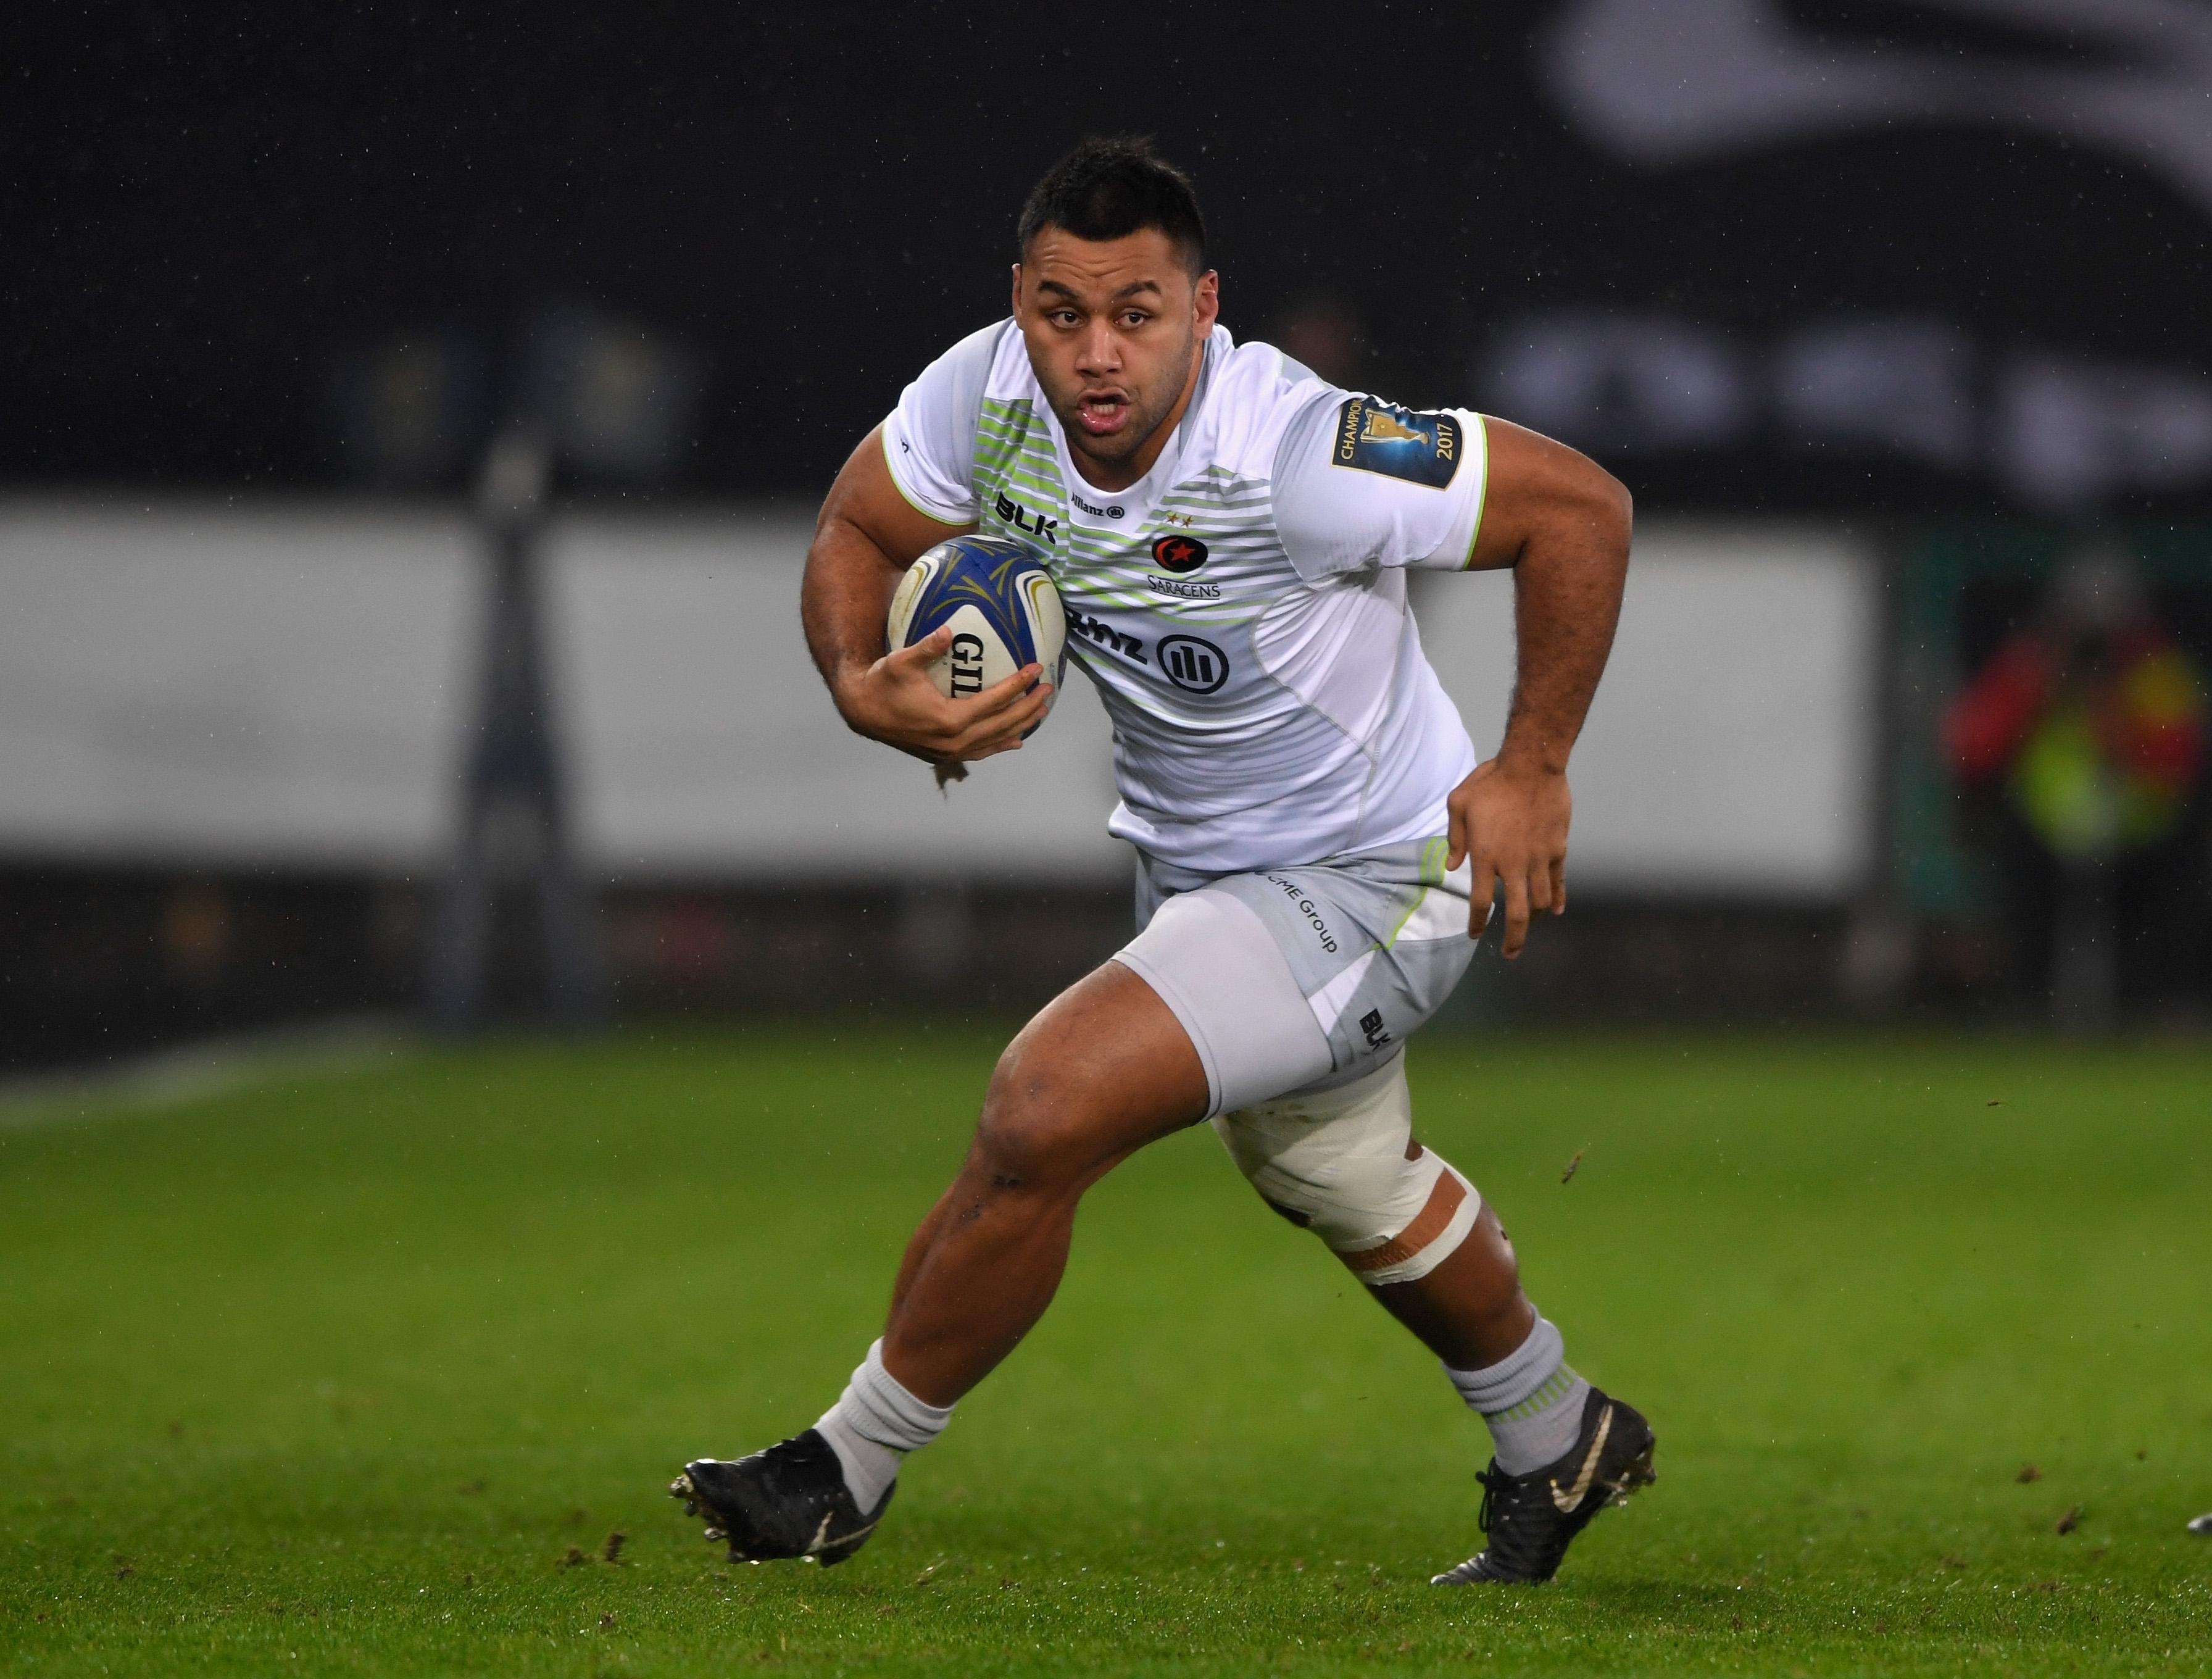 Billy Vunipola wants to do his partying on the field this time around